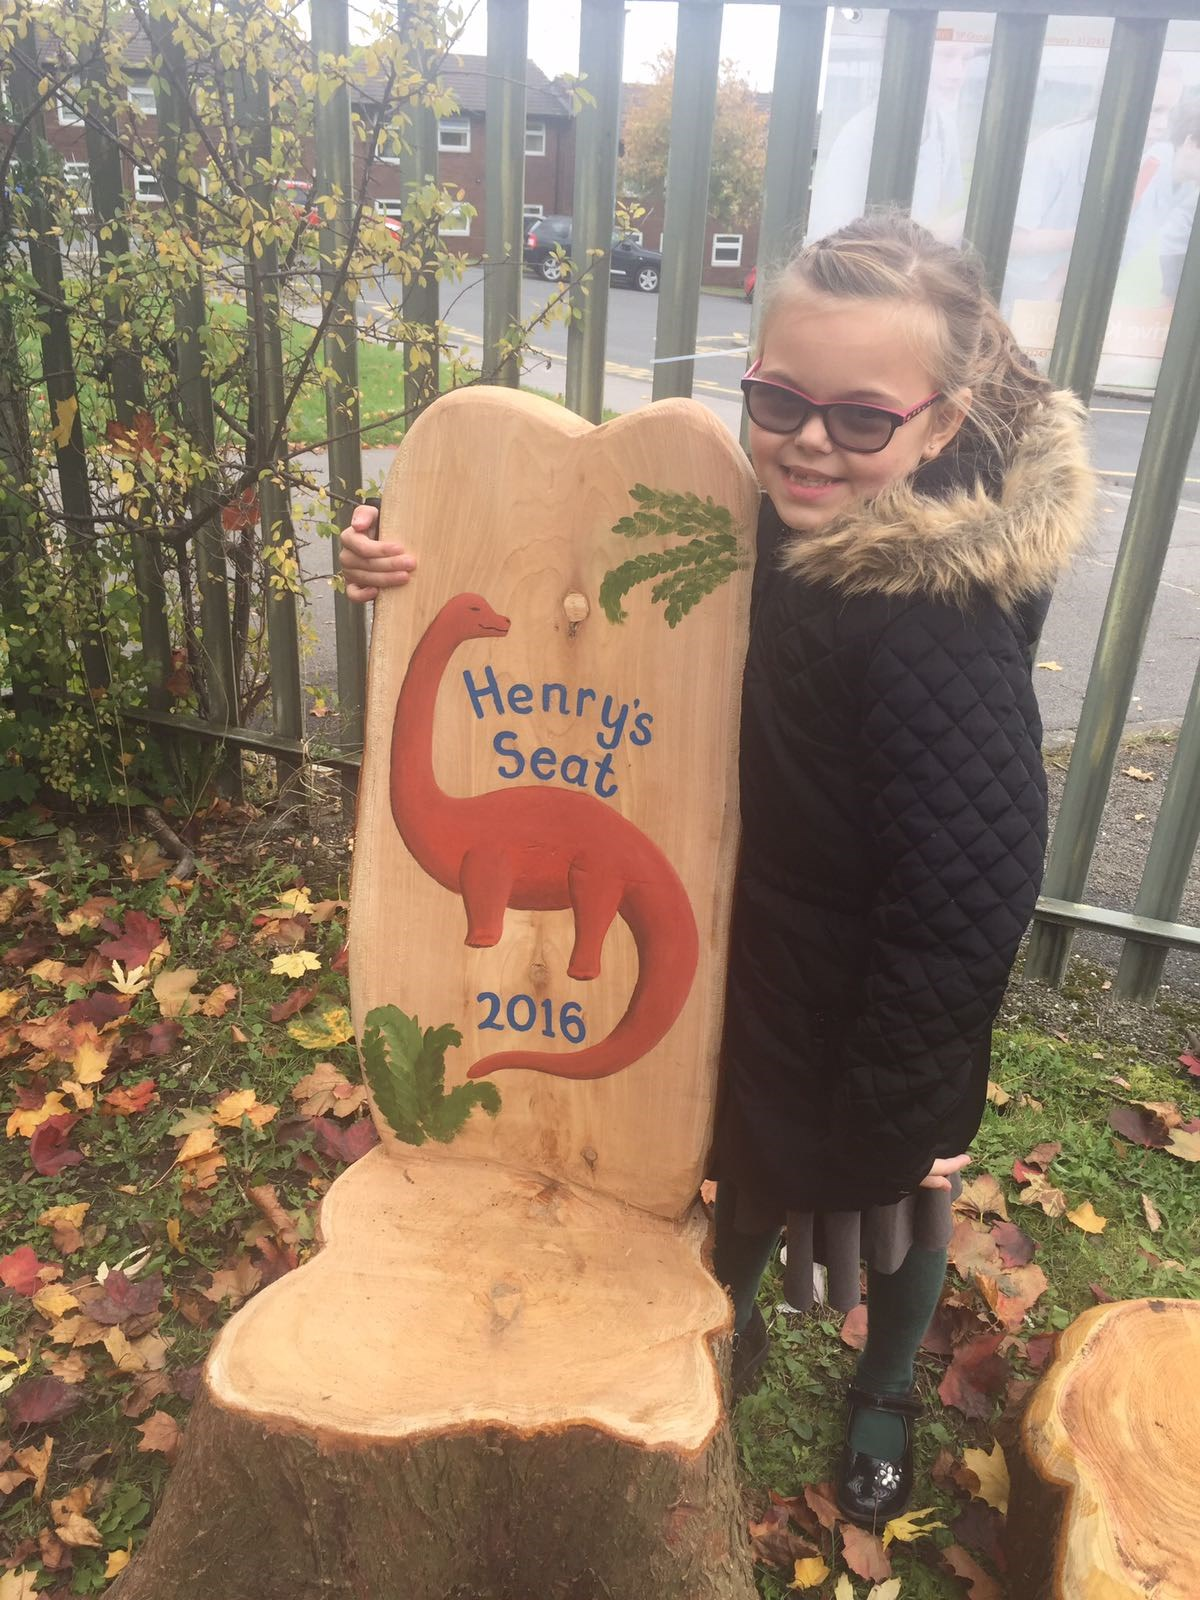 Tilly unveiled Henry's seat at school. 19/10/2016